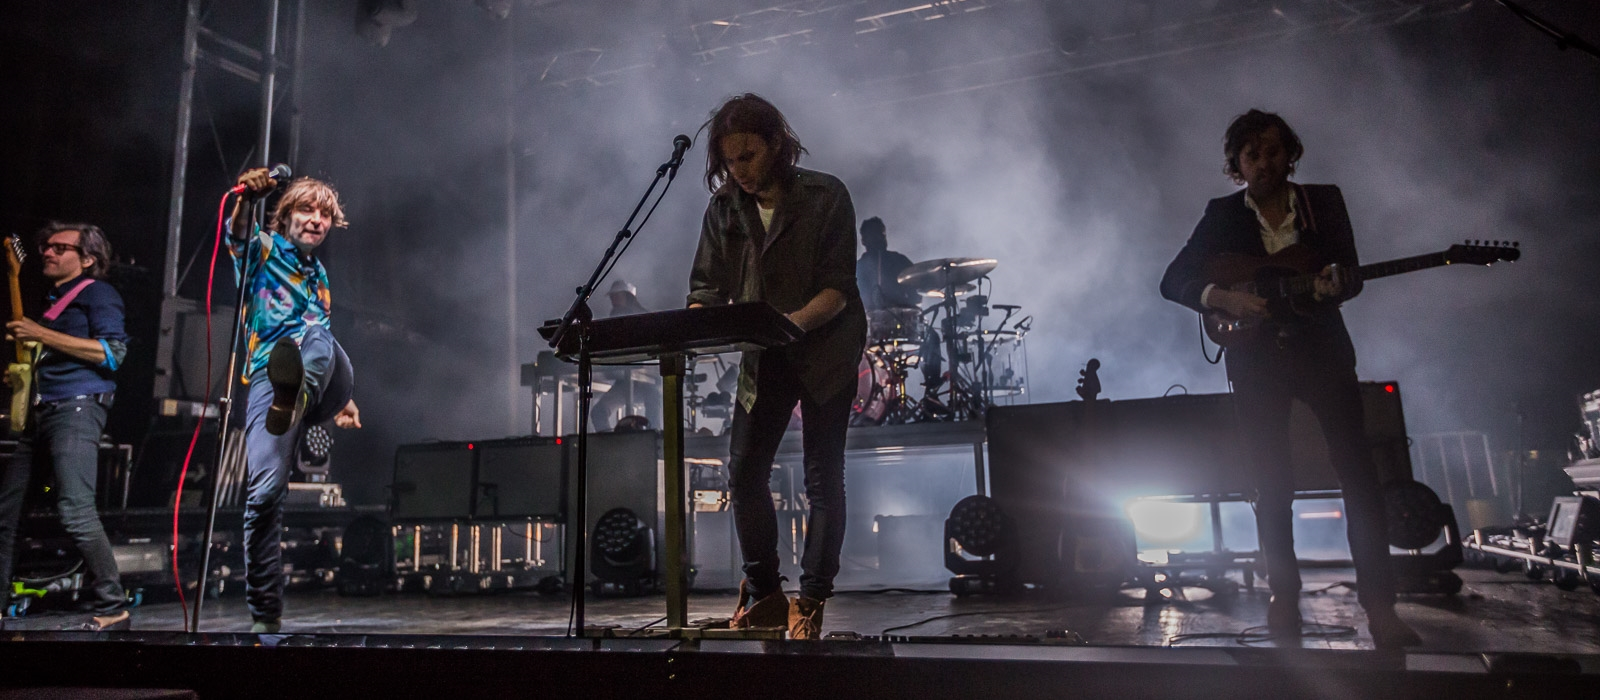 French indie pop band Phoenix put on a memorable show.